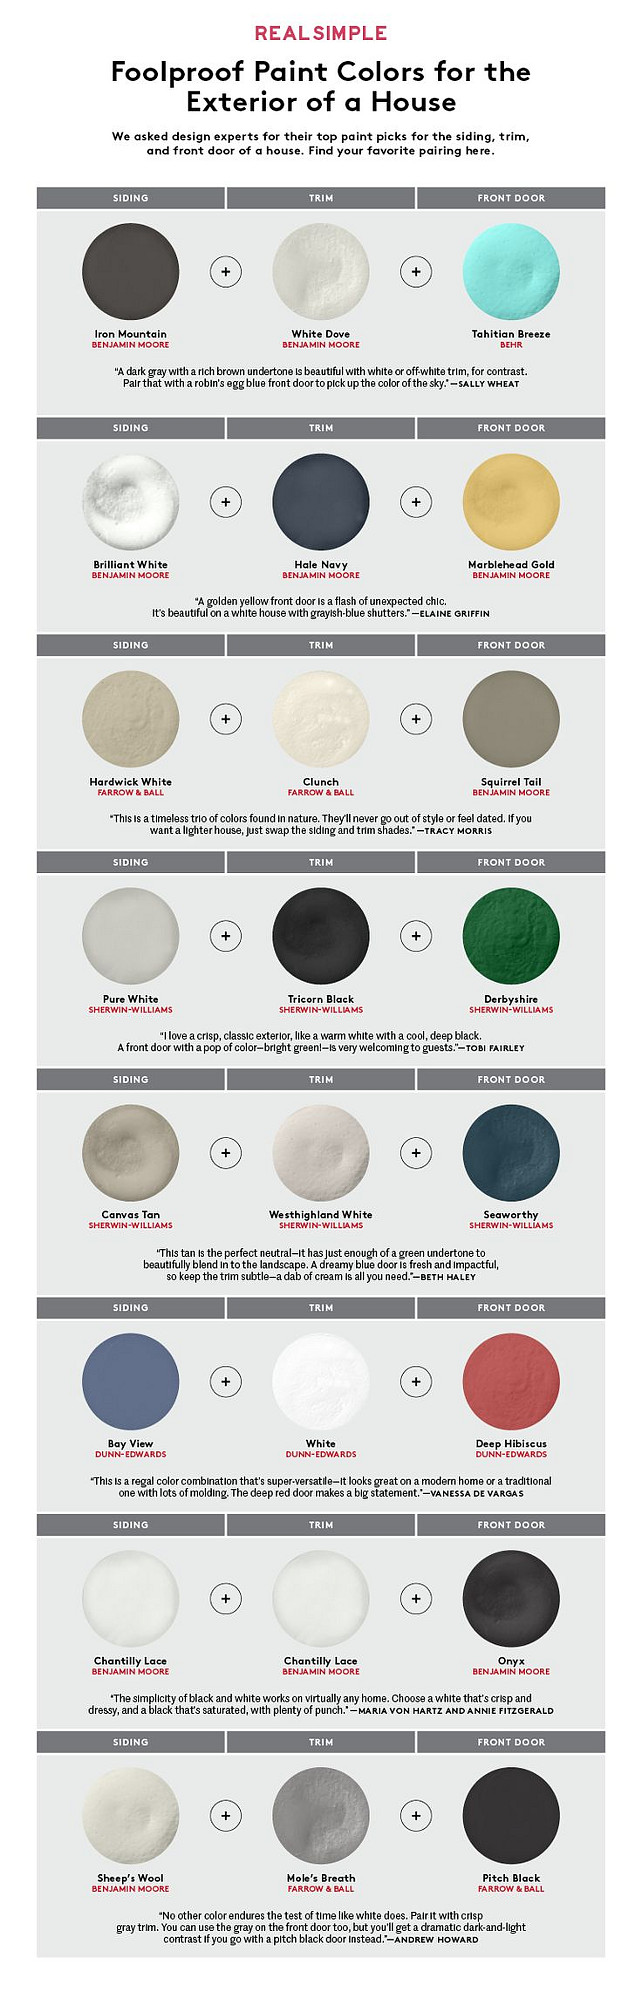 Exterior Paint Color. How to Pick the Perfect Paint Colors for Your House Exterior. Foolproof Exterior Paint Color Palette. Foolproof paint colors for the exterior of houses. Read this before choosing the exterior paint color of your house. #ExterioPaintColor Via Real Simple.